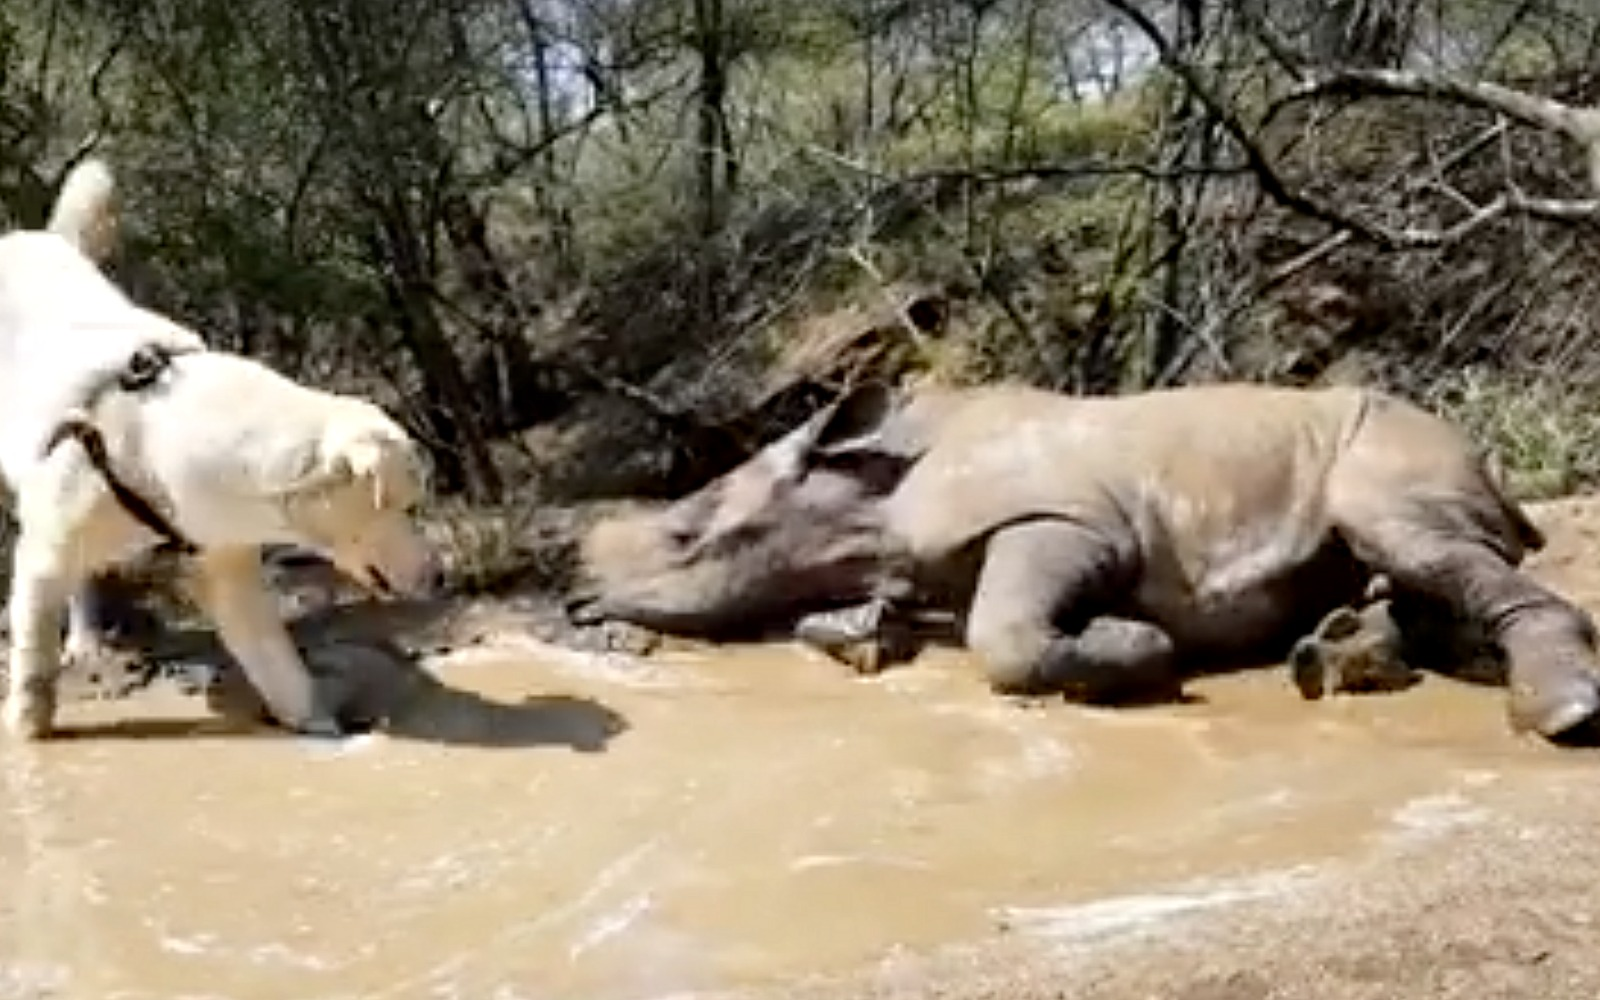 This Dog and Baby Rhino Playing Together in Mud Are Just What You Need (VIDEO)